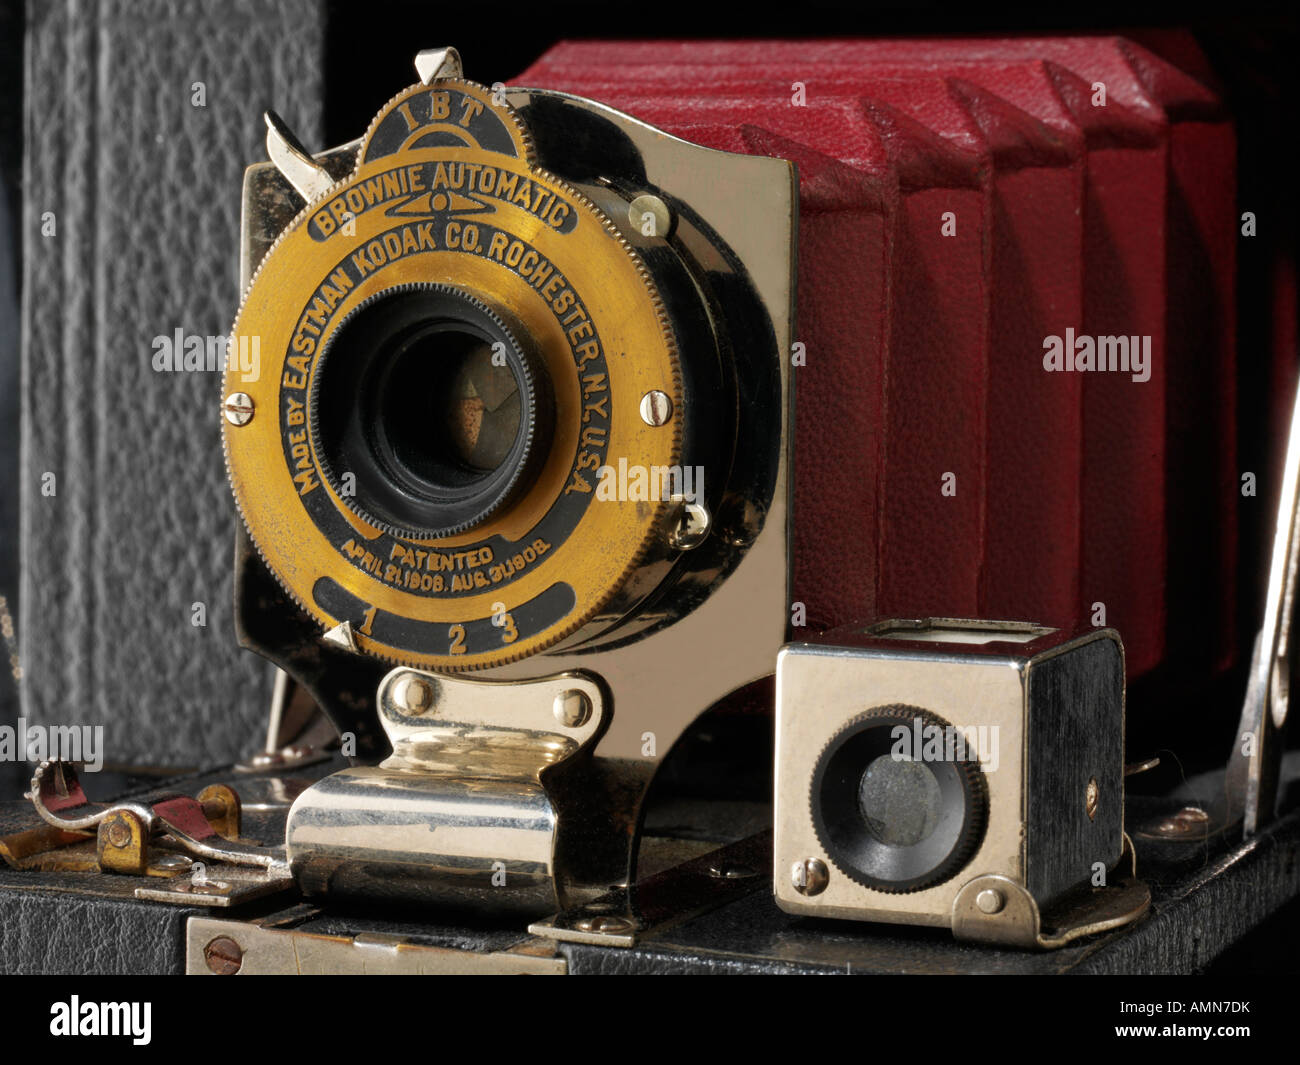 Kodak Eastman Brownie Automatic with red bellows camera. No 2 Pocket Folding - Stock Image